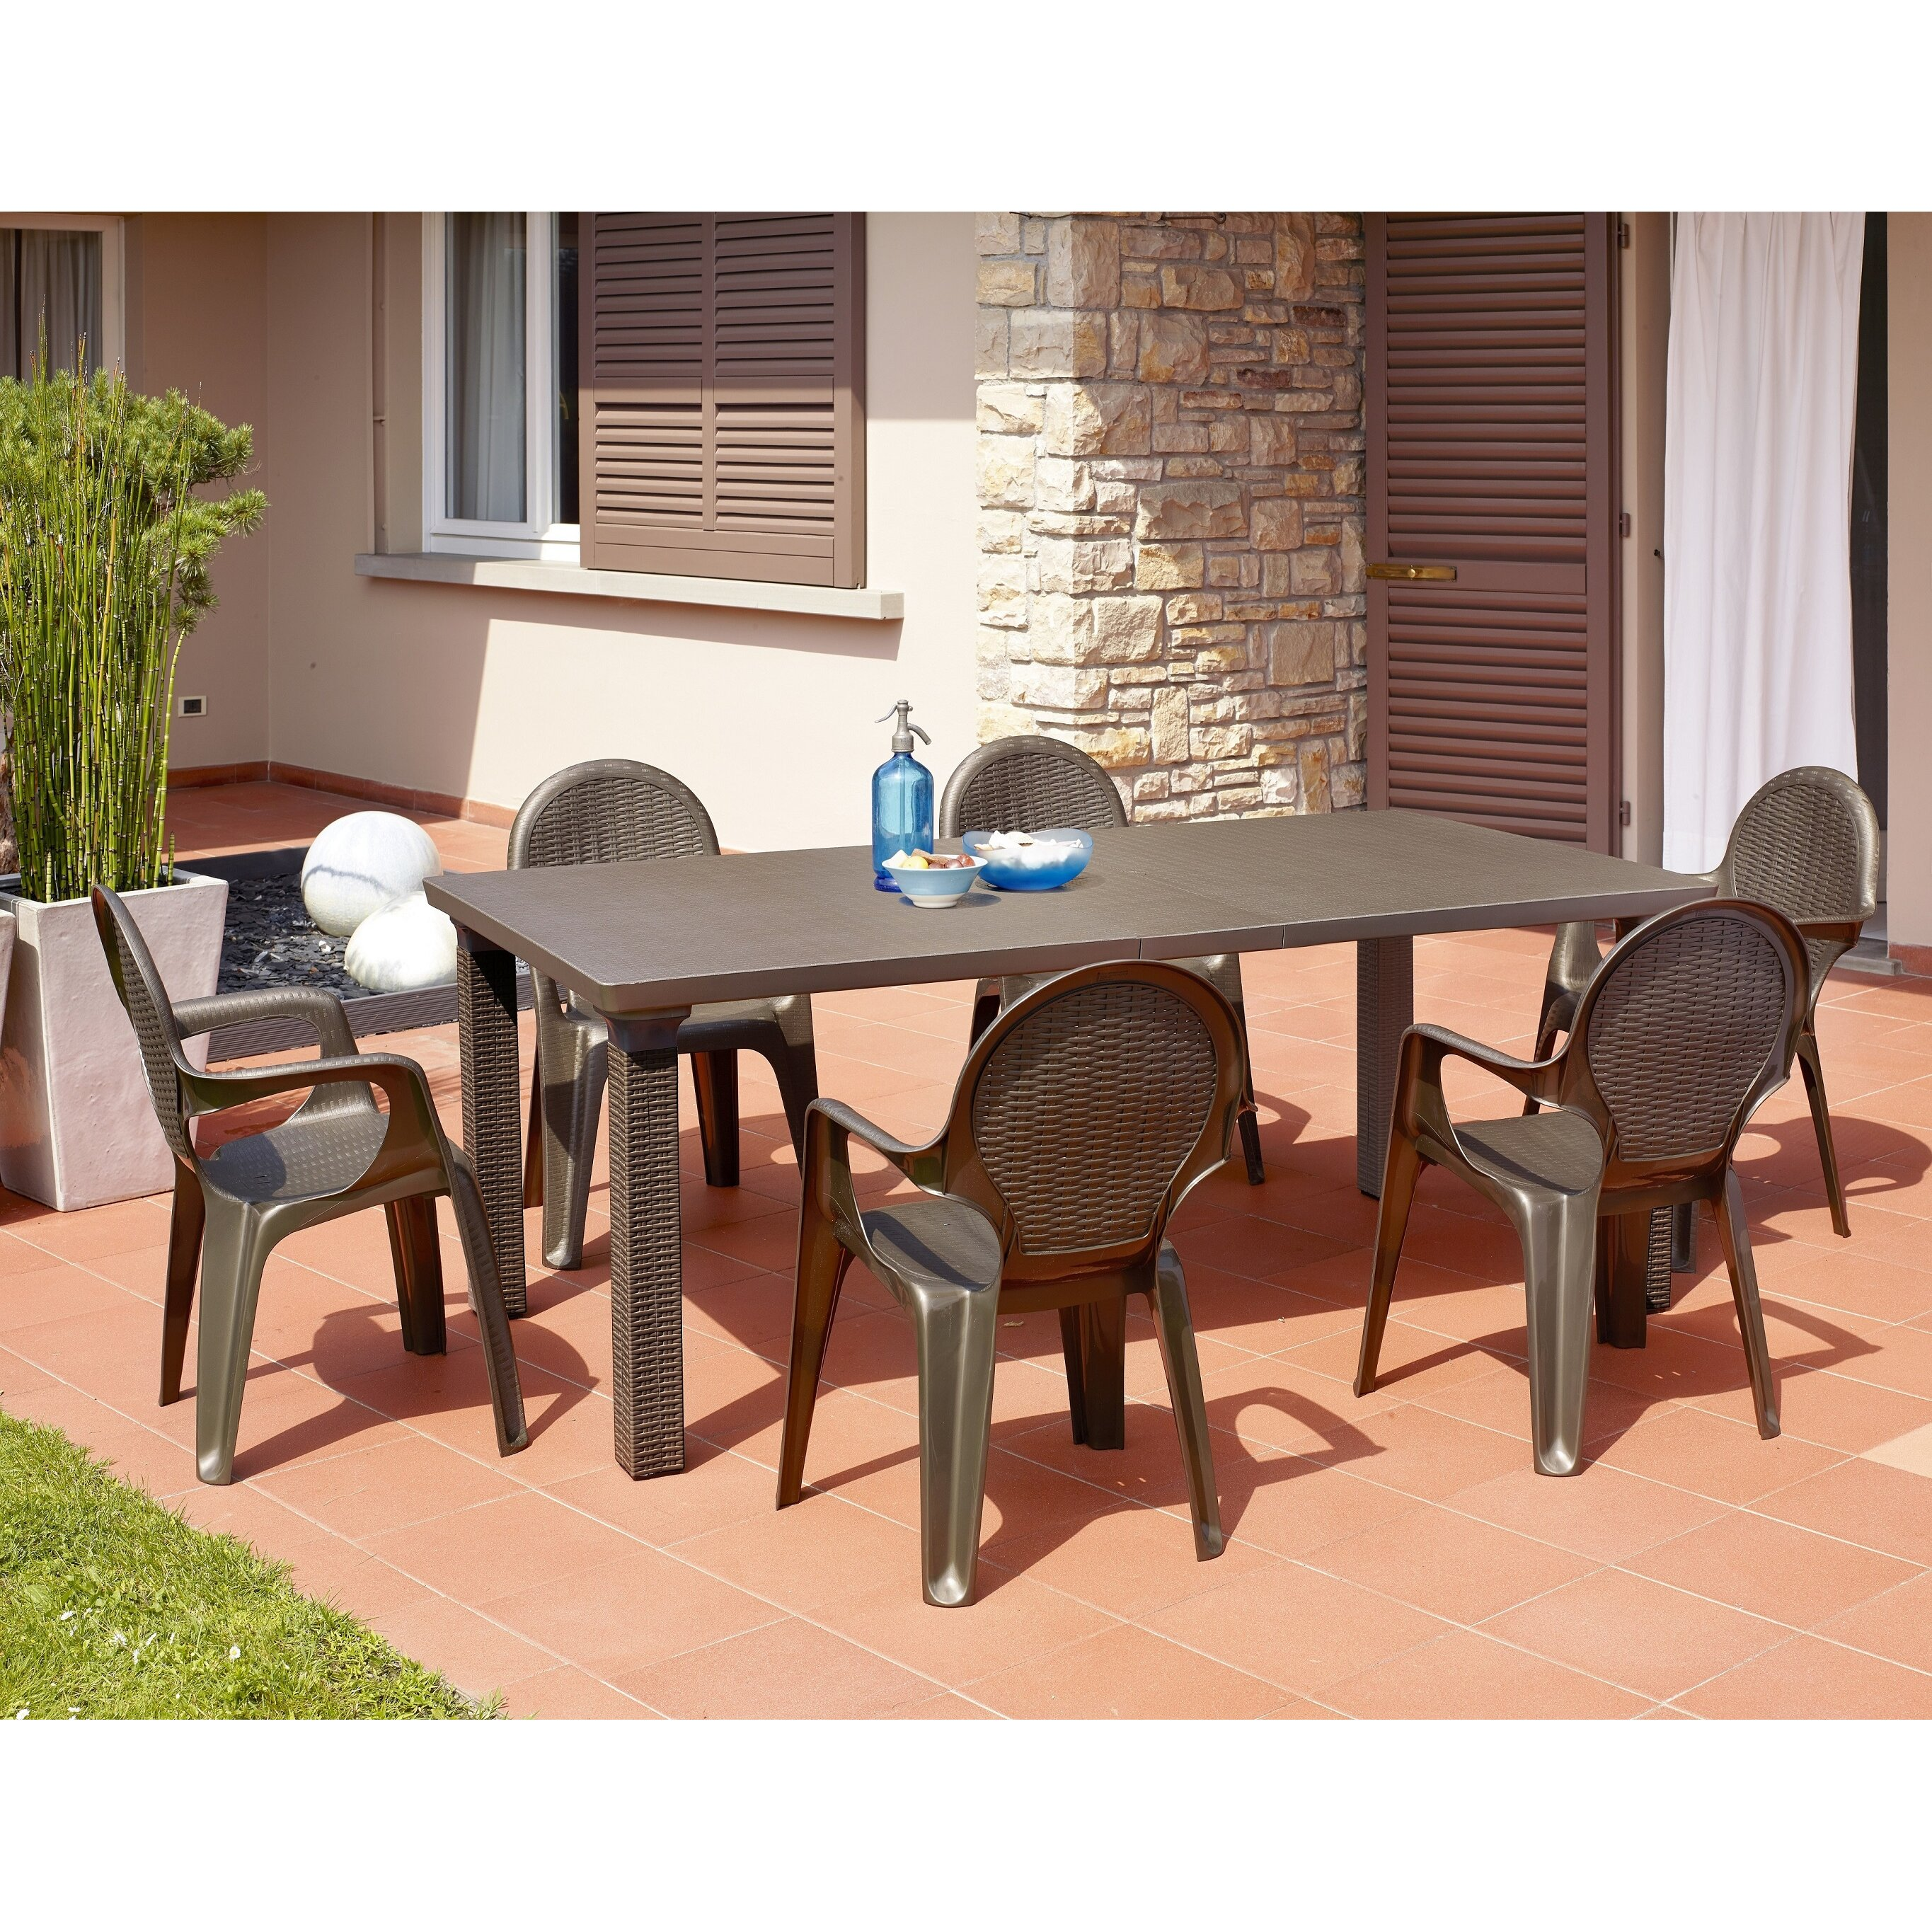 Extending Outdoor Dining Table Scab Triplo Rattan Style Extending Outdoor Dining Table Wayfair